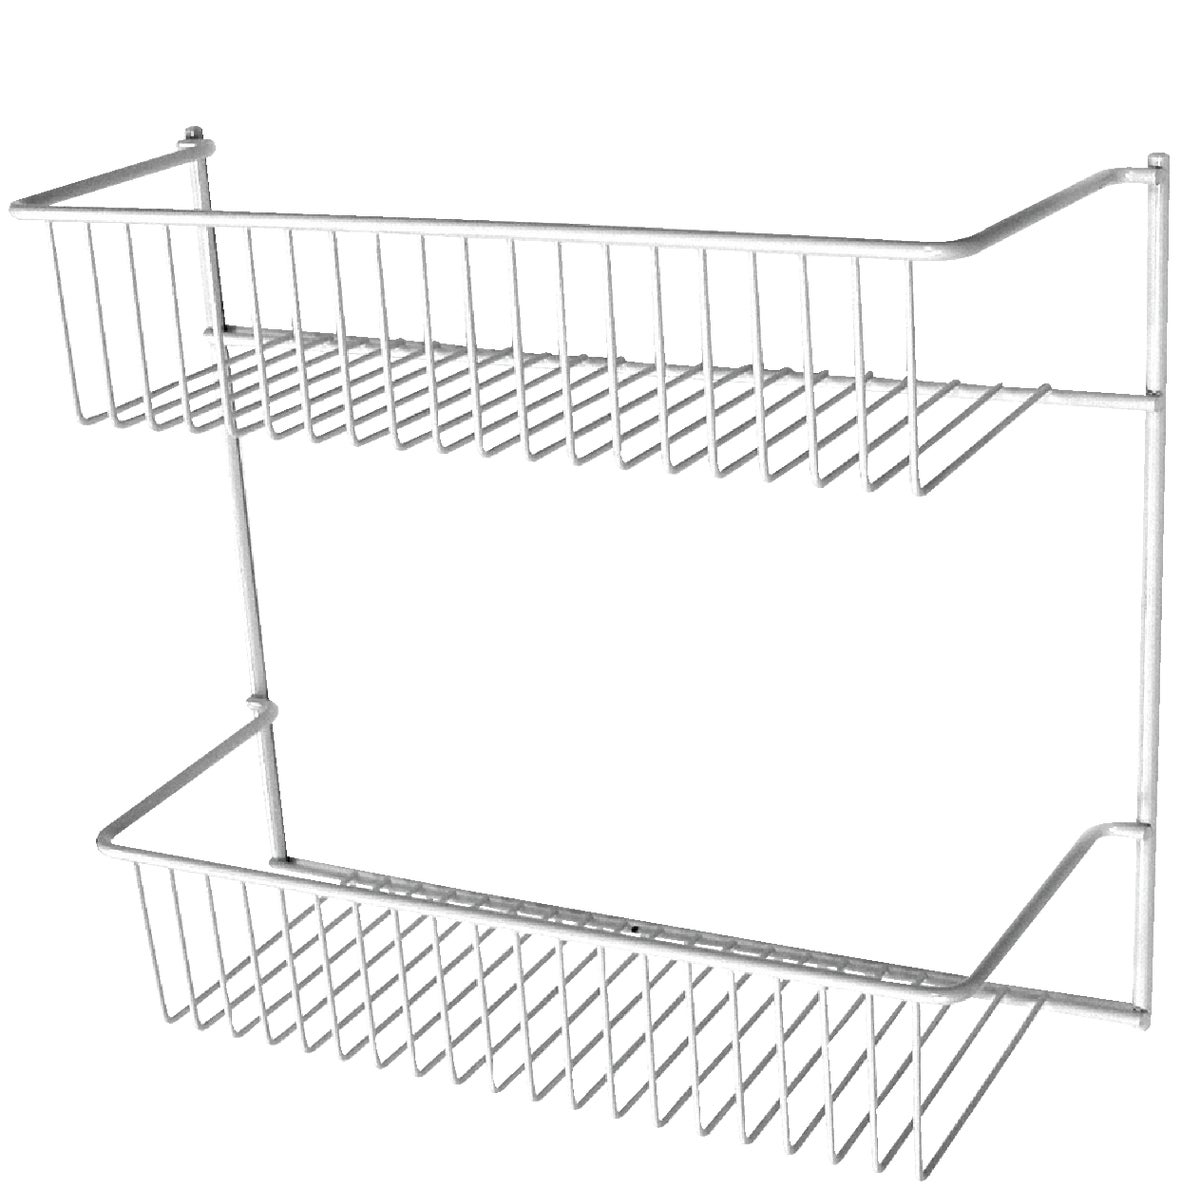 2-TIER WALL STORAGE RACK - 800200 by Closetmaid